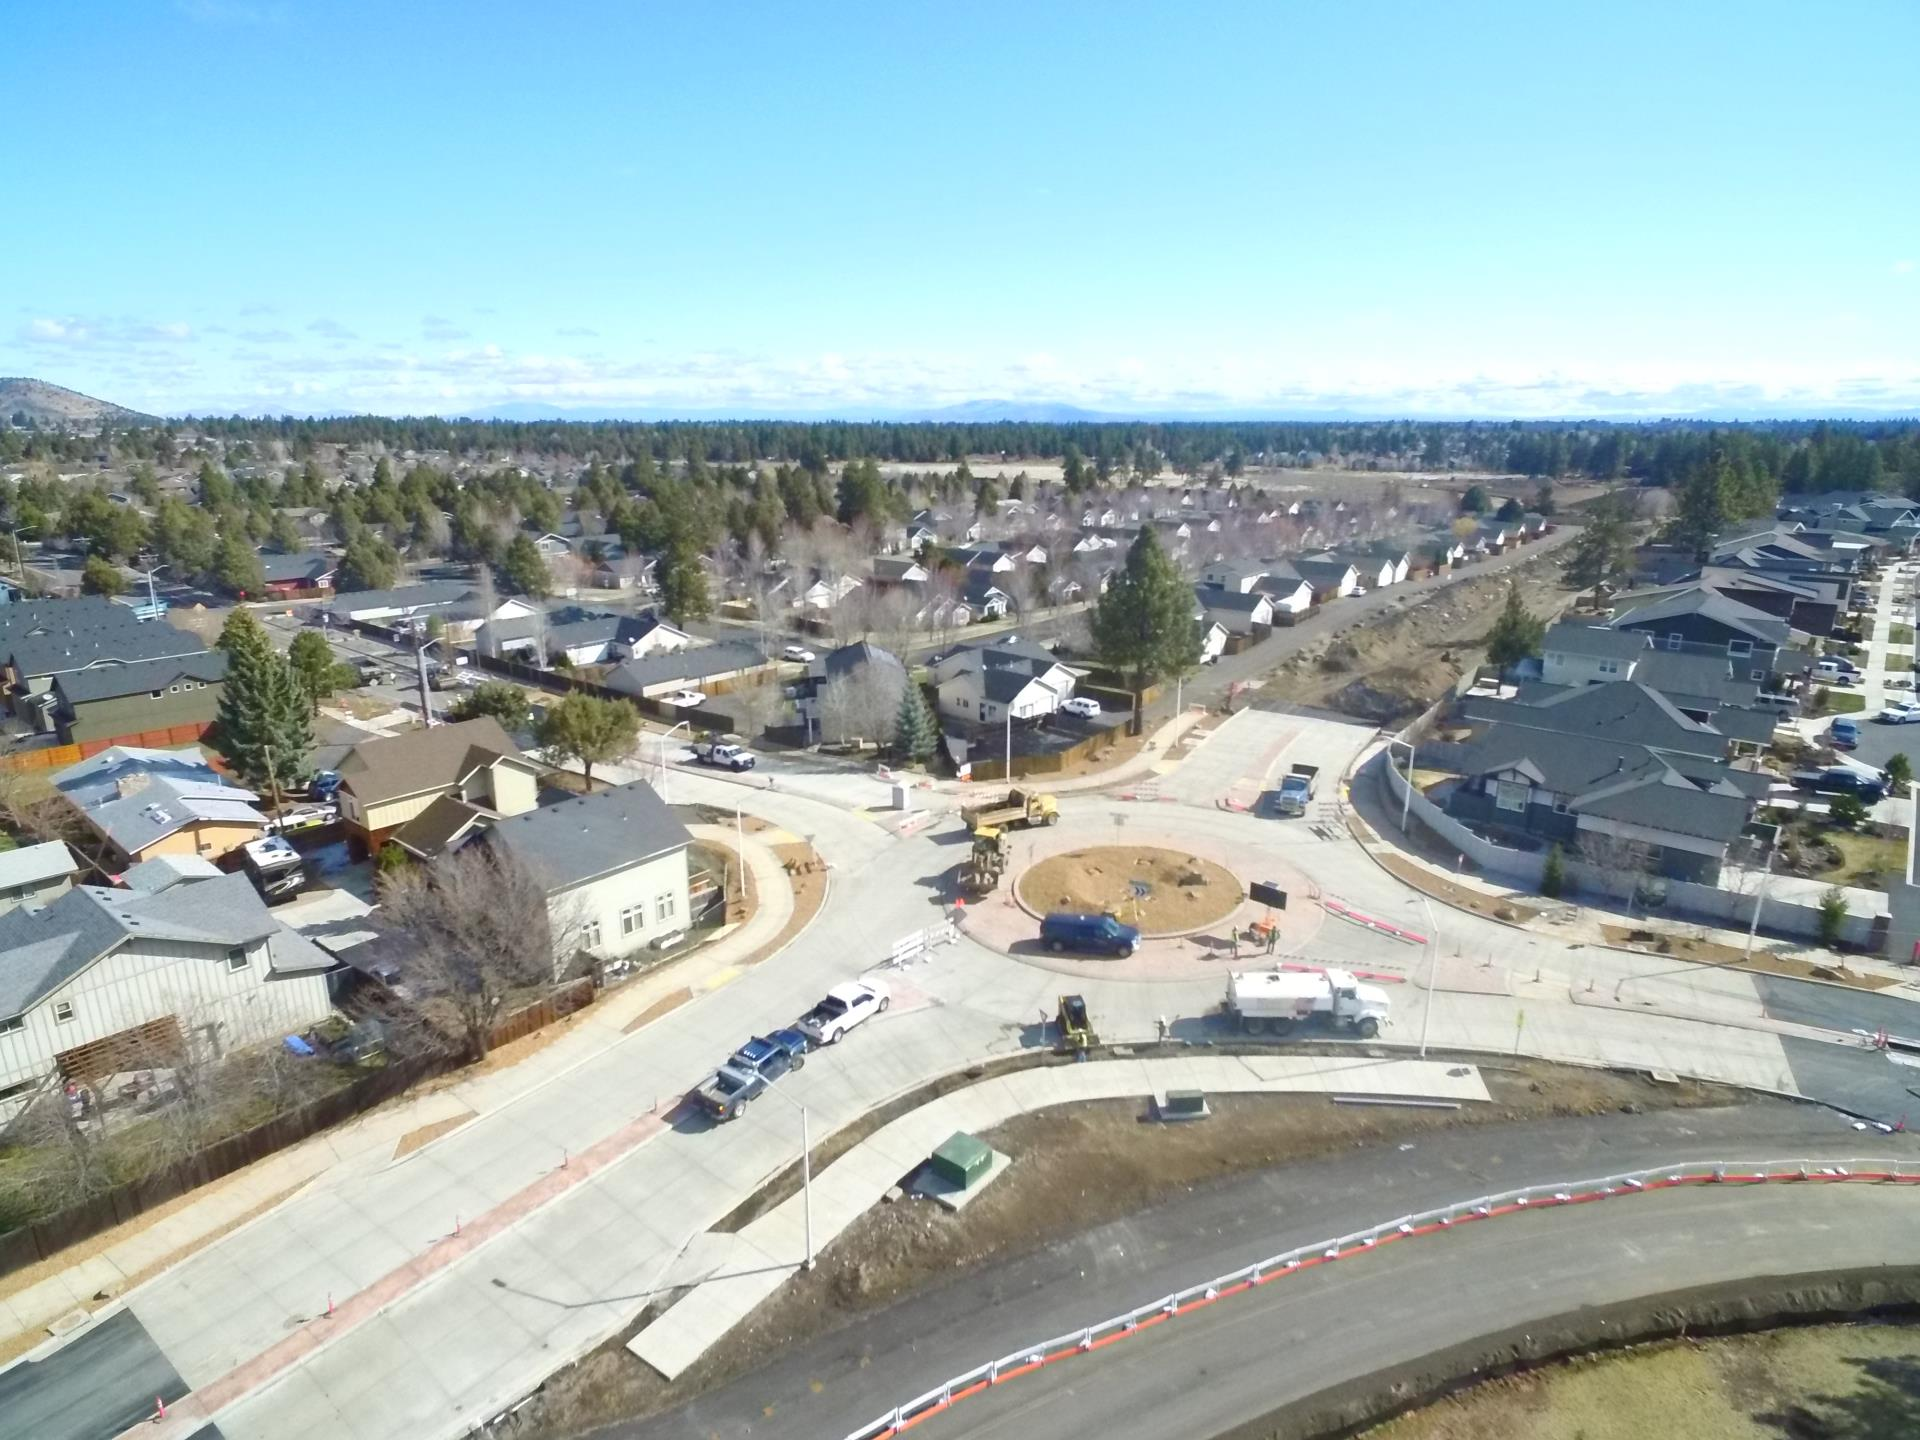 An Aerial photo overlooking work crews and equipment at the Murphy/Brosterhous roundabout, with surrounding residintial neighborhood and pine trees and Pilot Butte in the background.